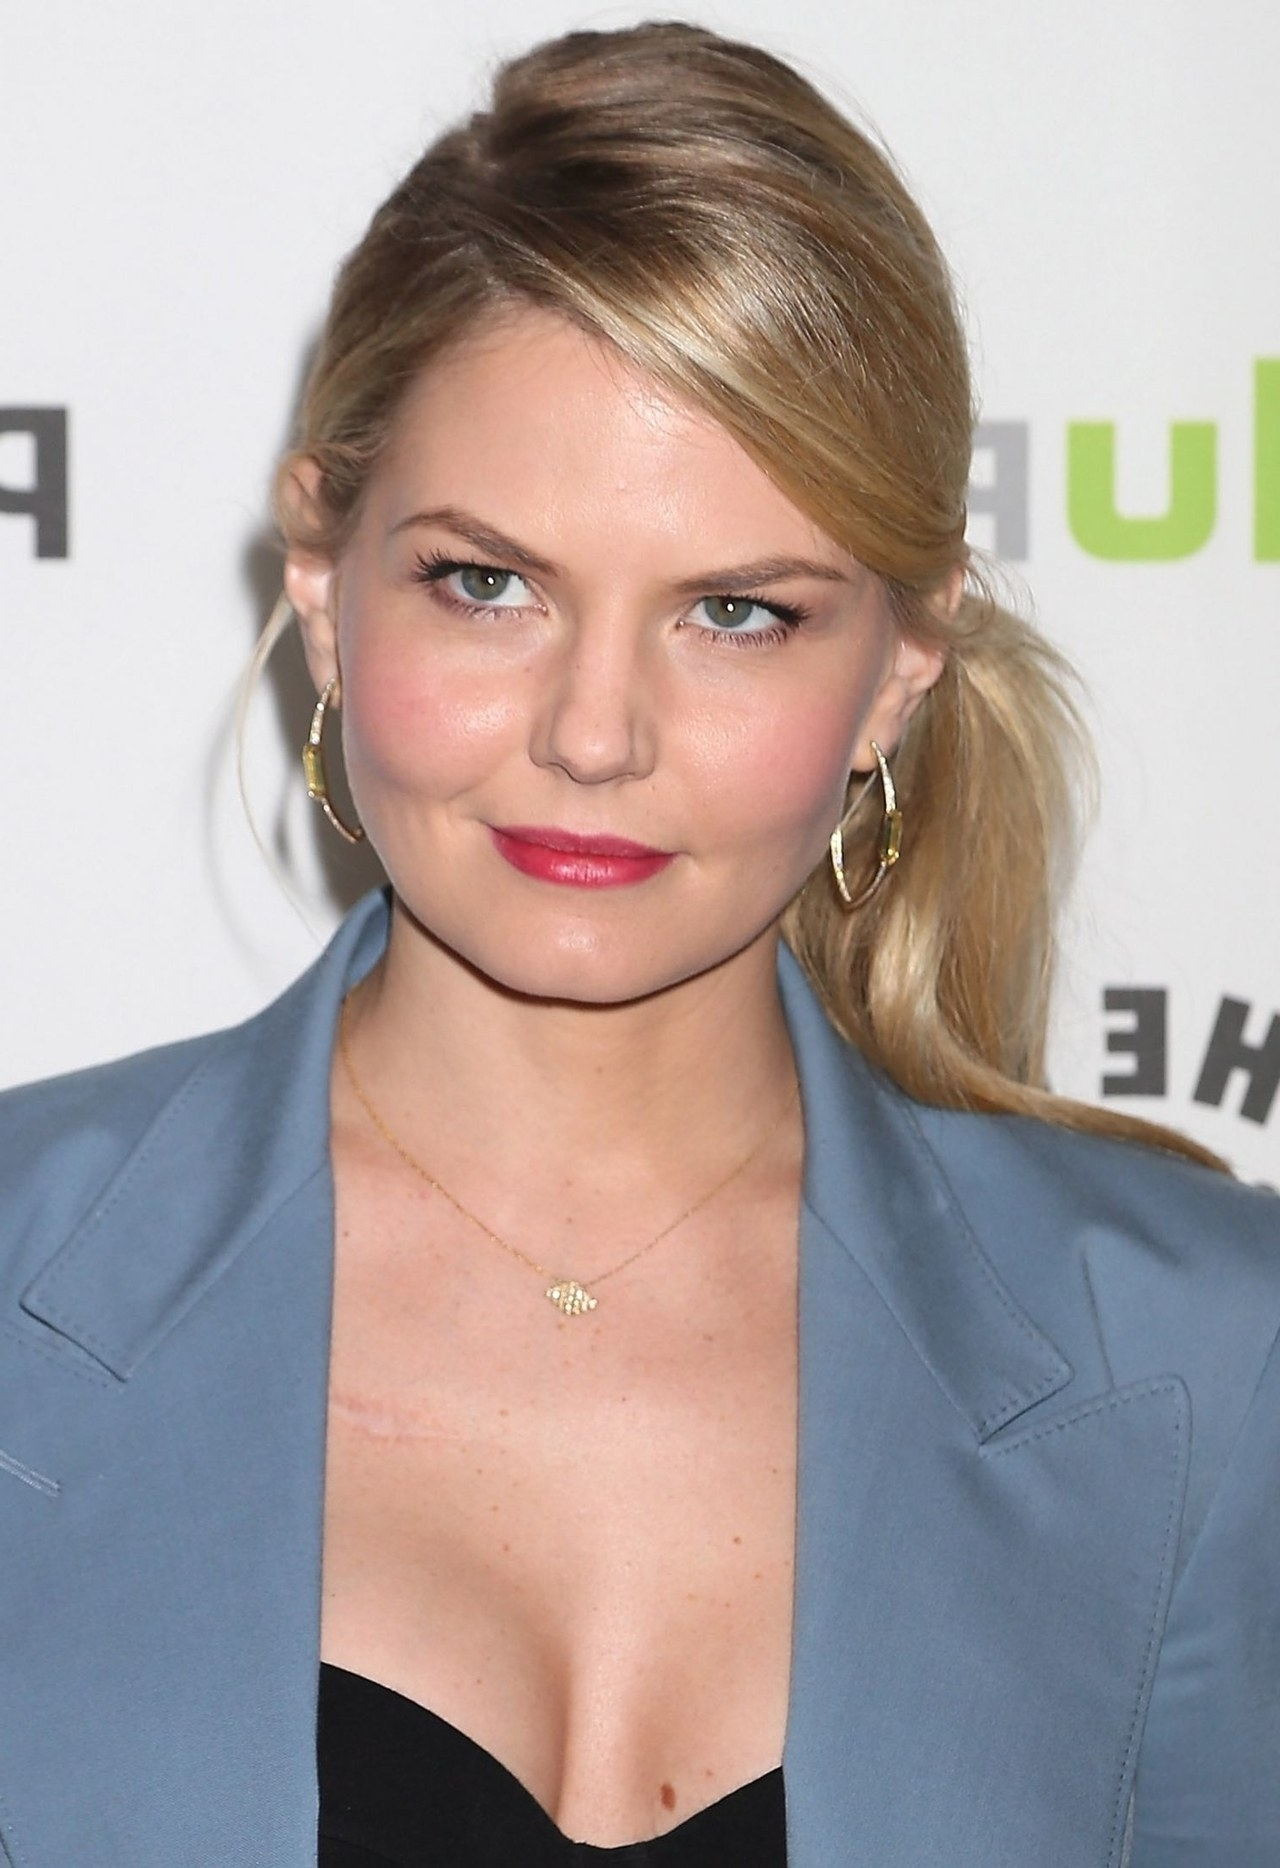 Best And Newest Red Carpet Worthy Hairstyles Intended For Do You Think Jennifer Morrison's Hairstyle Is Red Carpet Worthy? (i (View 12 of 20)